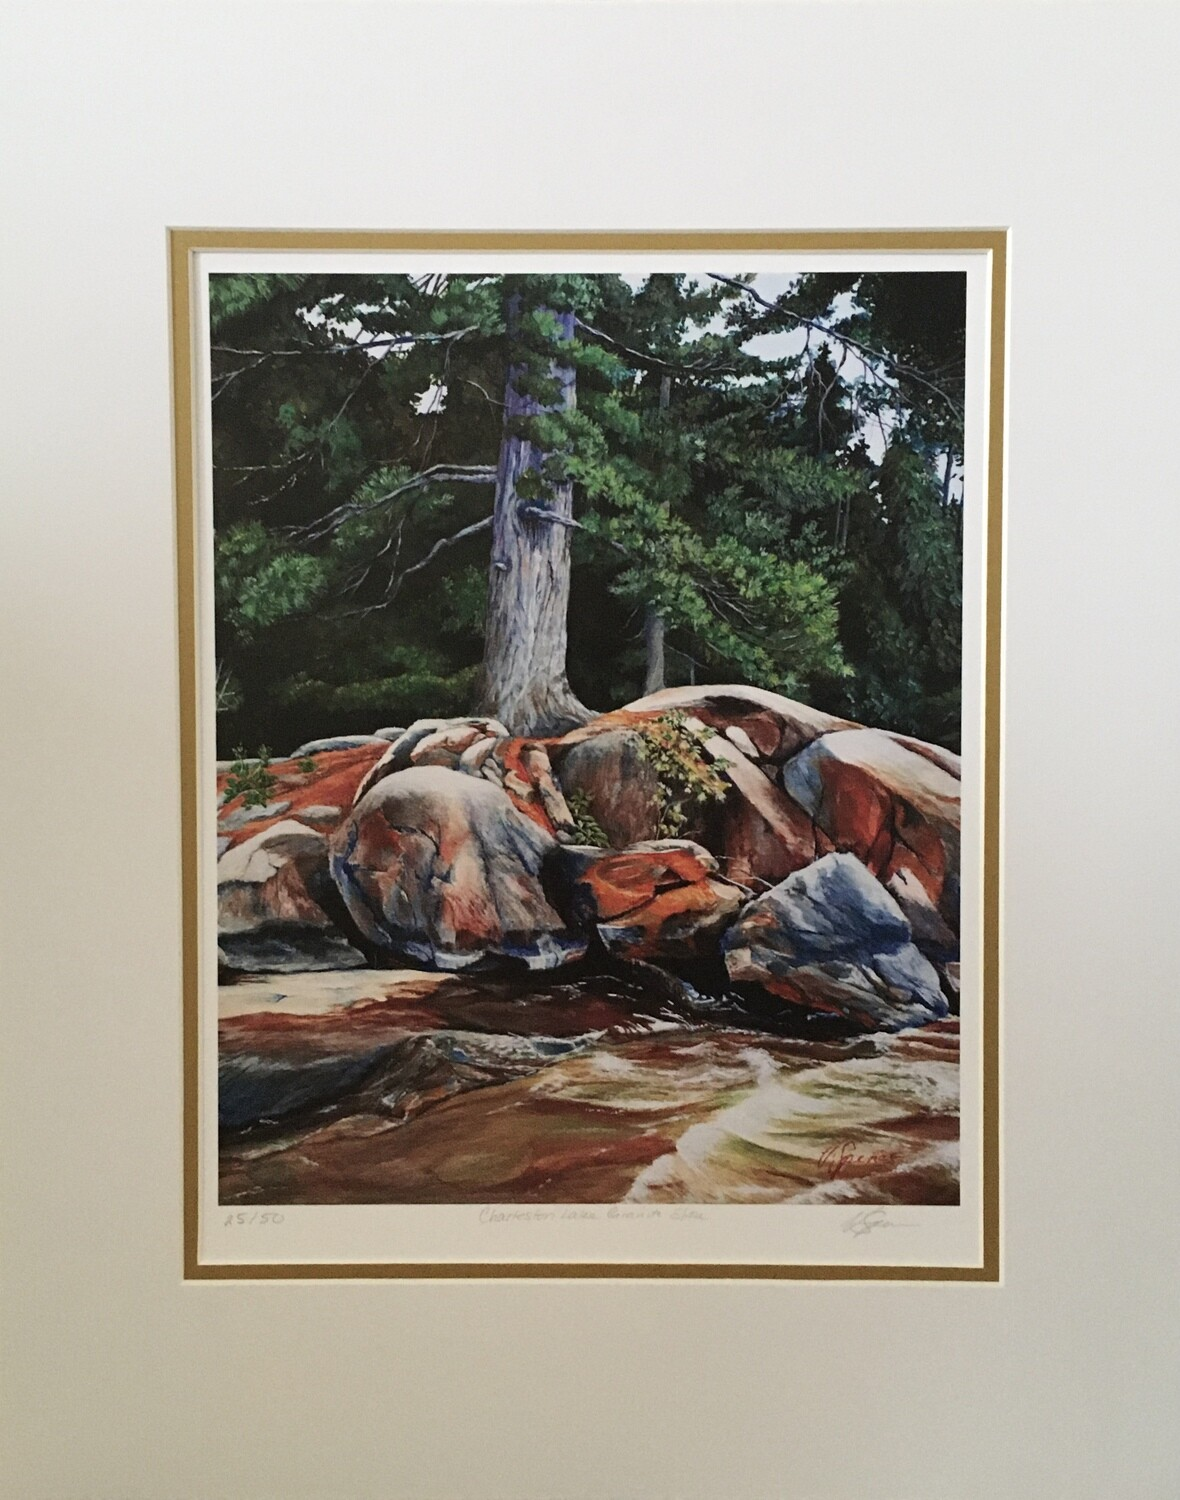 Lone Pine on Granite Shore, Print Matted & Signed